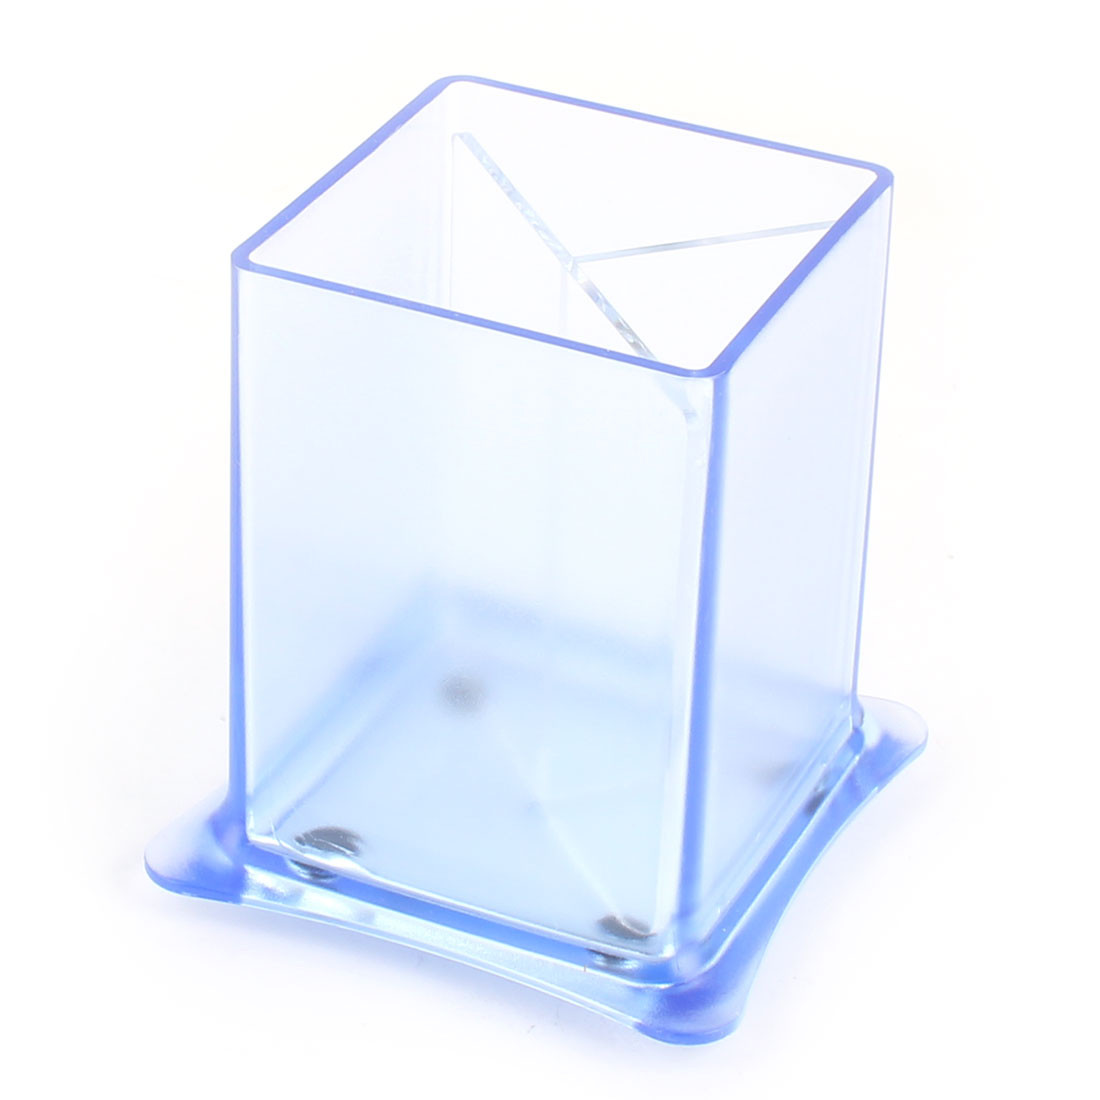 School Office Plastic Rectangular Shaped 3 Compartments Pen Storage Holder Blue